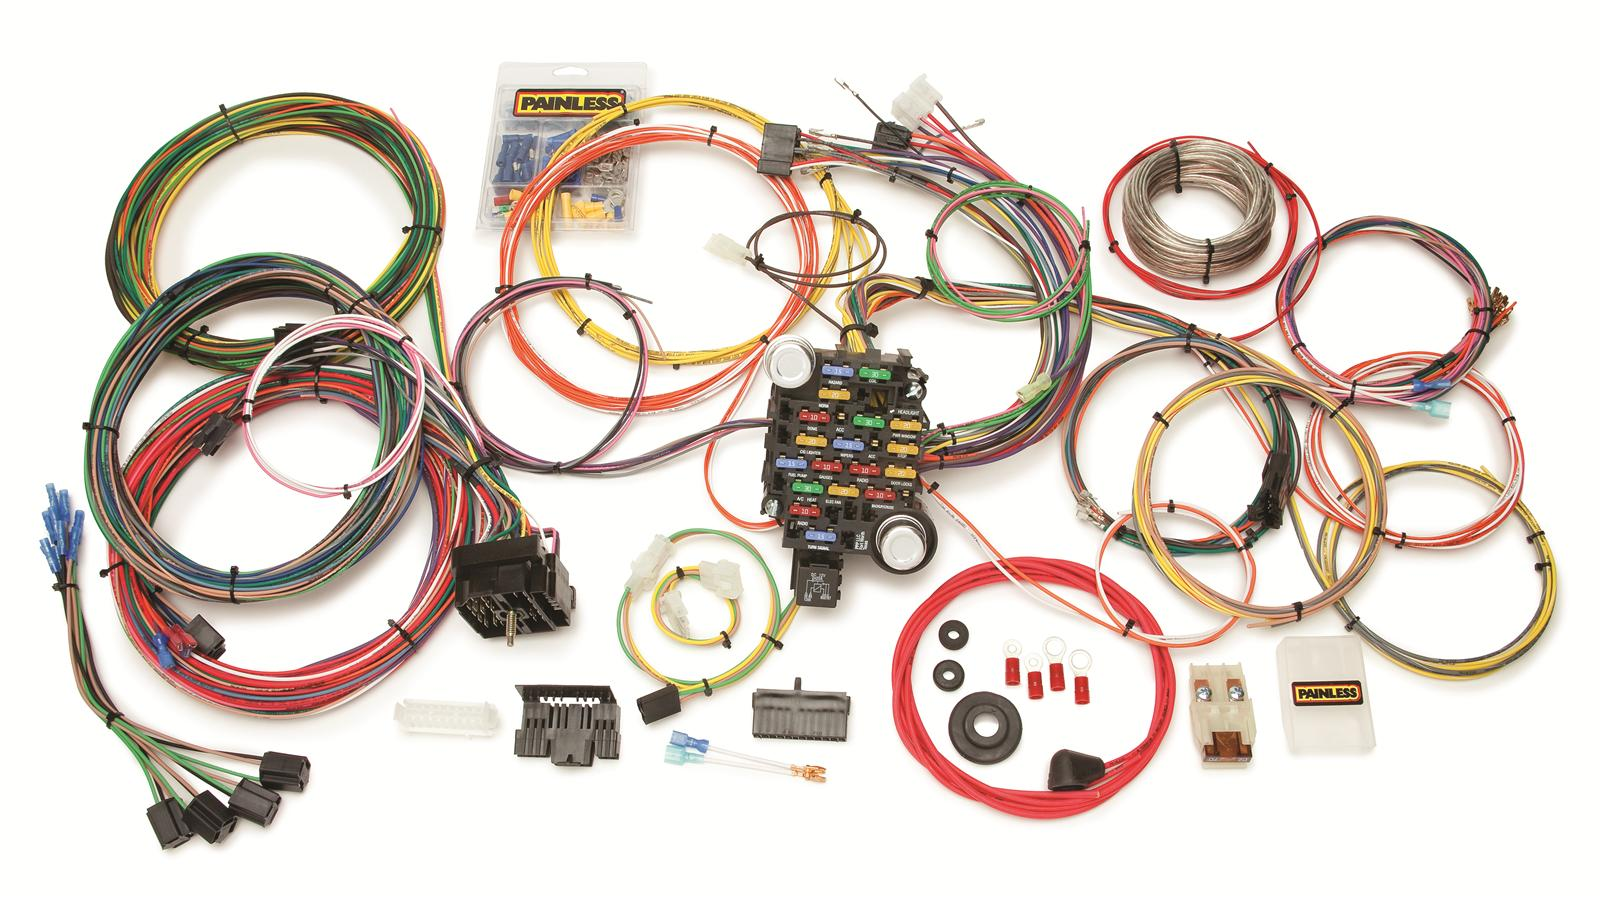 prf 10205_xl painless performance gmc chevy truck harnesses 10205 free painless wire harness at bayanpartner.co